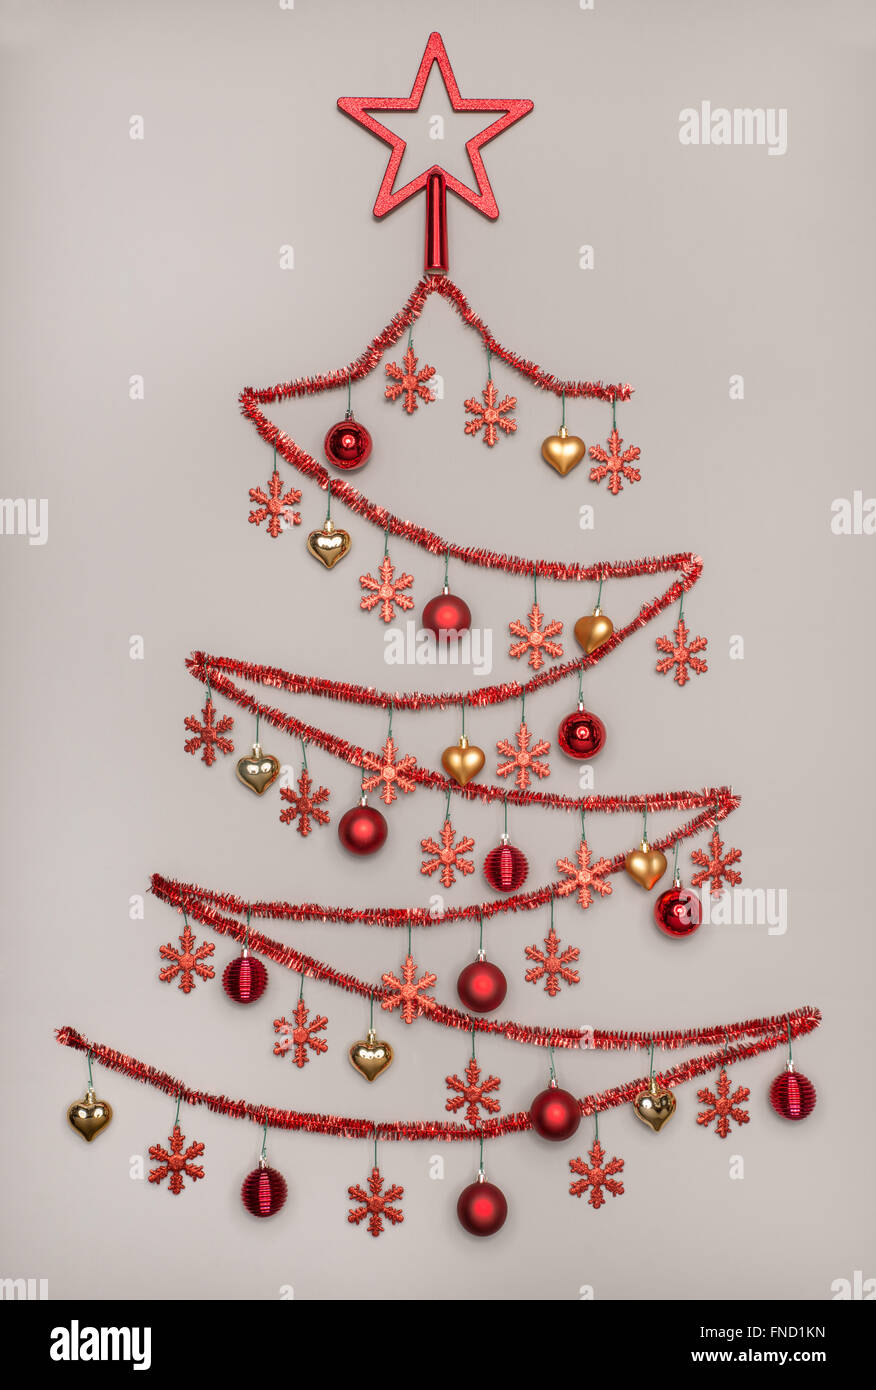 handmad tinsel christmas tree with star shape hanging baubles with snowflake , Creativity Concepts - Stock Image